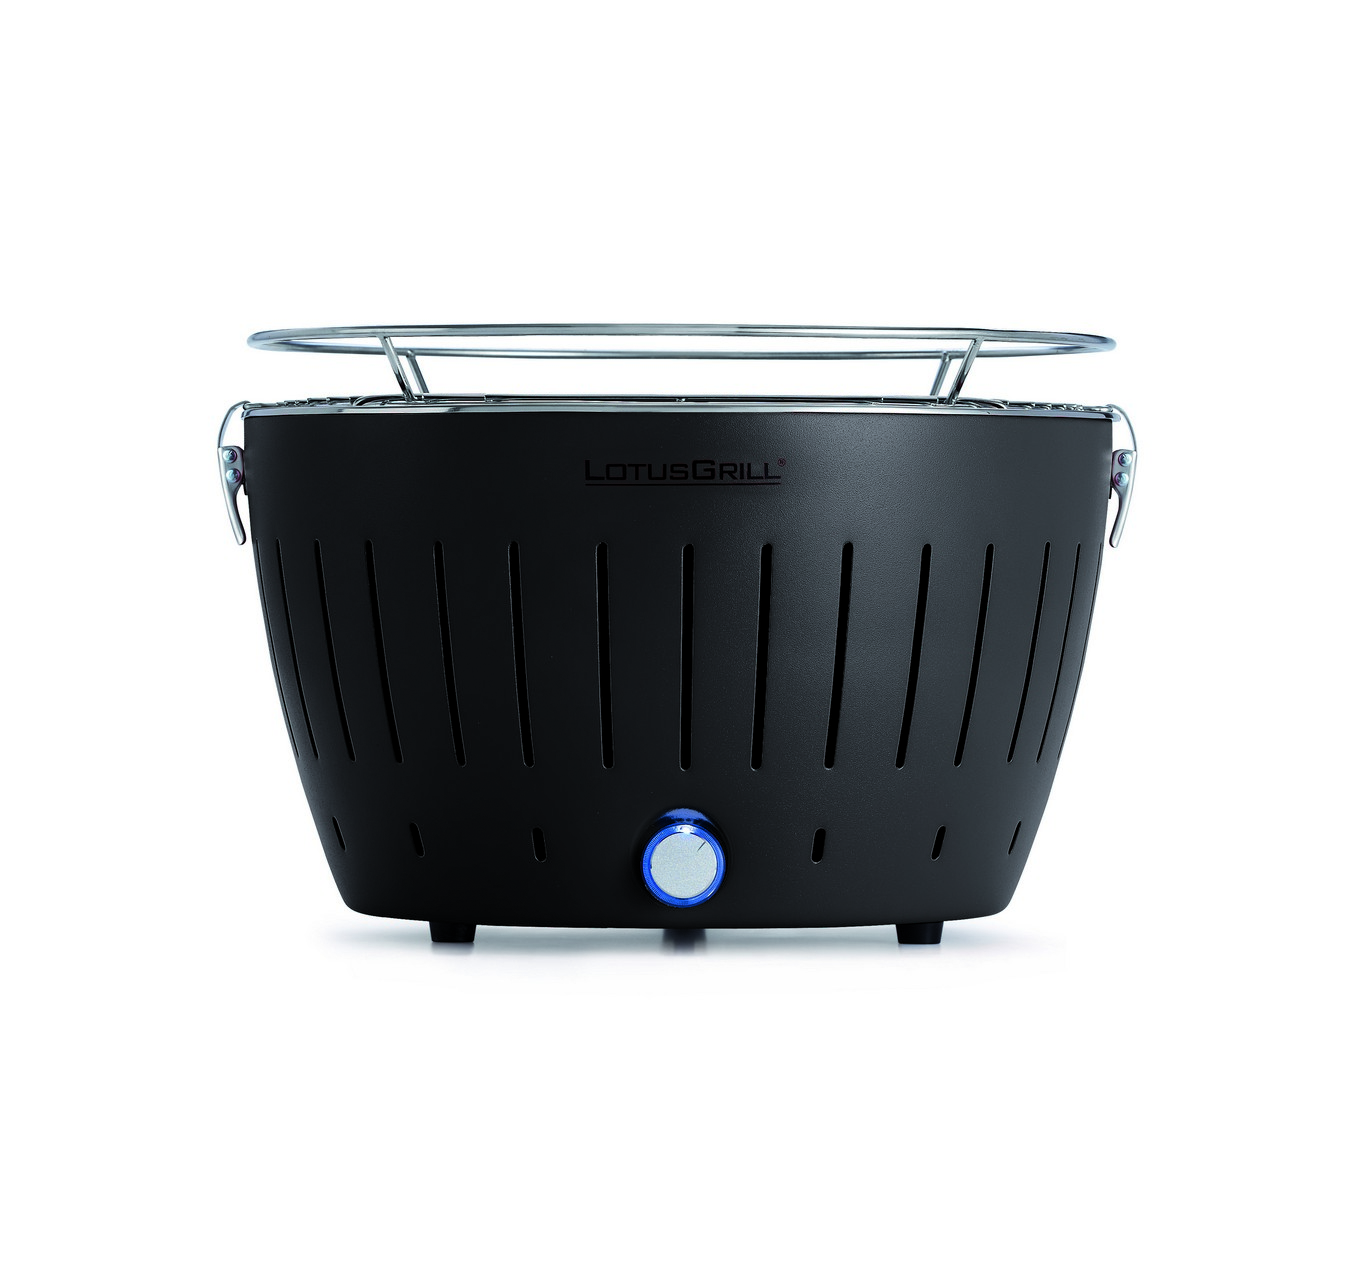 LotusGrill Standard Anthracite